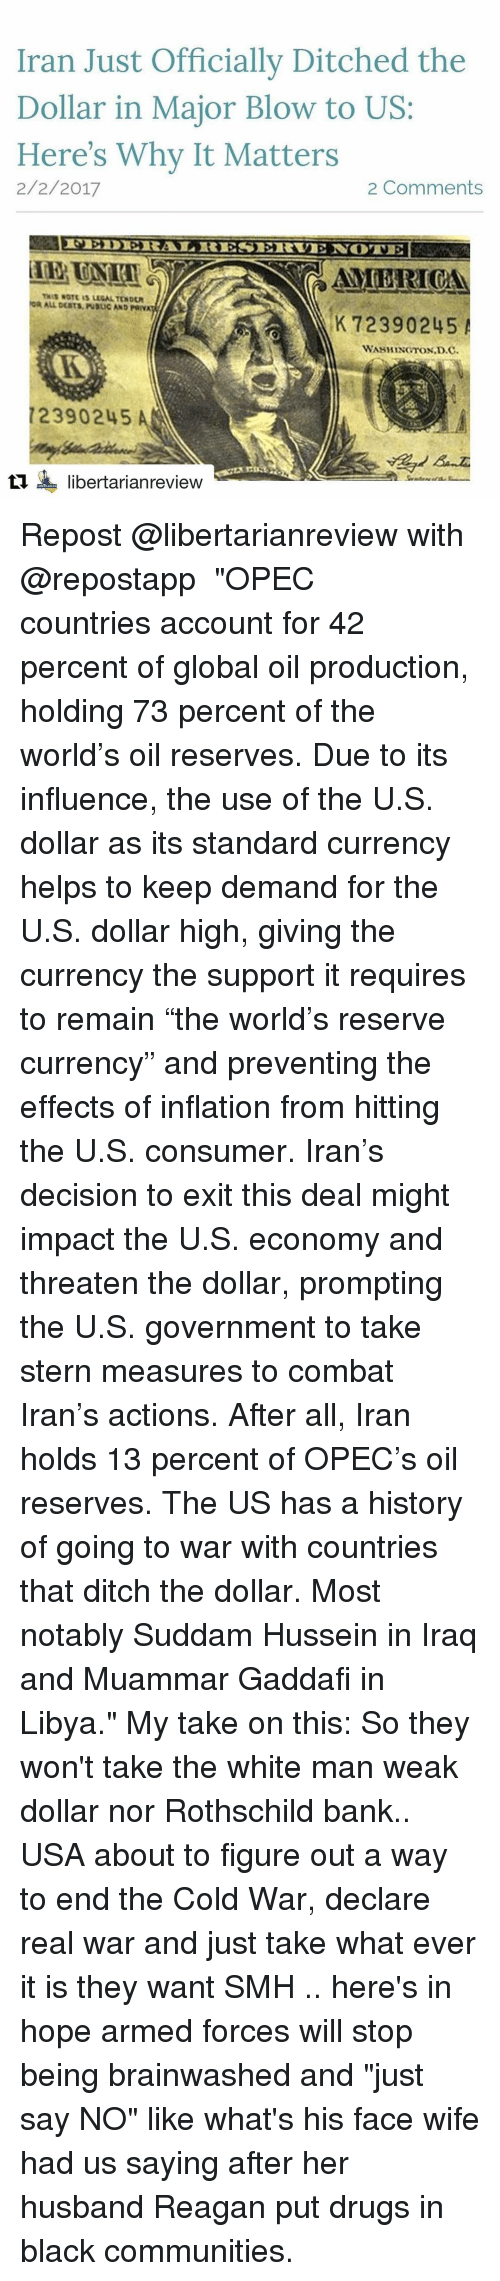 """rothschild bank: Iran Just Officially Ditched the  Dollar in Major Blow to US  Here's Why It Matters  2 Comments  2/2/2017  AMERICAN  THIS NOTE ULSAL TENDUR  K 72390245  A  WASHINGTON D.C.  72390245  ti libertarianreview Repost @libertarianreview with @repostapp ・・・ """"OPEC countries account for 42 percent of global oil production, holding 73 percent of the world's oil reserves. Due to its influence, the use of the U.S. dollar as its standard currency helps to keep demand for the U.S. dollar high, giving the currency the support it requires to remain """"the world's reserve currency"""" and preventing the effects of inflation from hitting the U.S. consumer. Iran's decision to exit this deal might impact the U.S. economy and threaten the dollar, prompting the U.S. government to take stern measures to combat Iran's actions. After all, Iran holds 13 percent of OPEC's oil reserves. The US has a history of going to war with countries that ditch the dollar. Most notably Suddam Hussein in Iraq and Muammar Gaddafi in Libya."""" My take on this: So they won't take the white man weak dollar nor Rothschild bank.. USA about to figure out a way to end the Cold War, declare real war and just take what ever it is they want SMH .. here's in hope armed forces will stop being brainwashed and """"just say NO"""" like what's his face wife had us saying after her husband Reagan put drugs in black communities."""